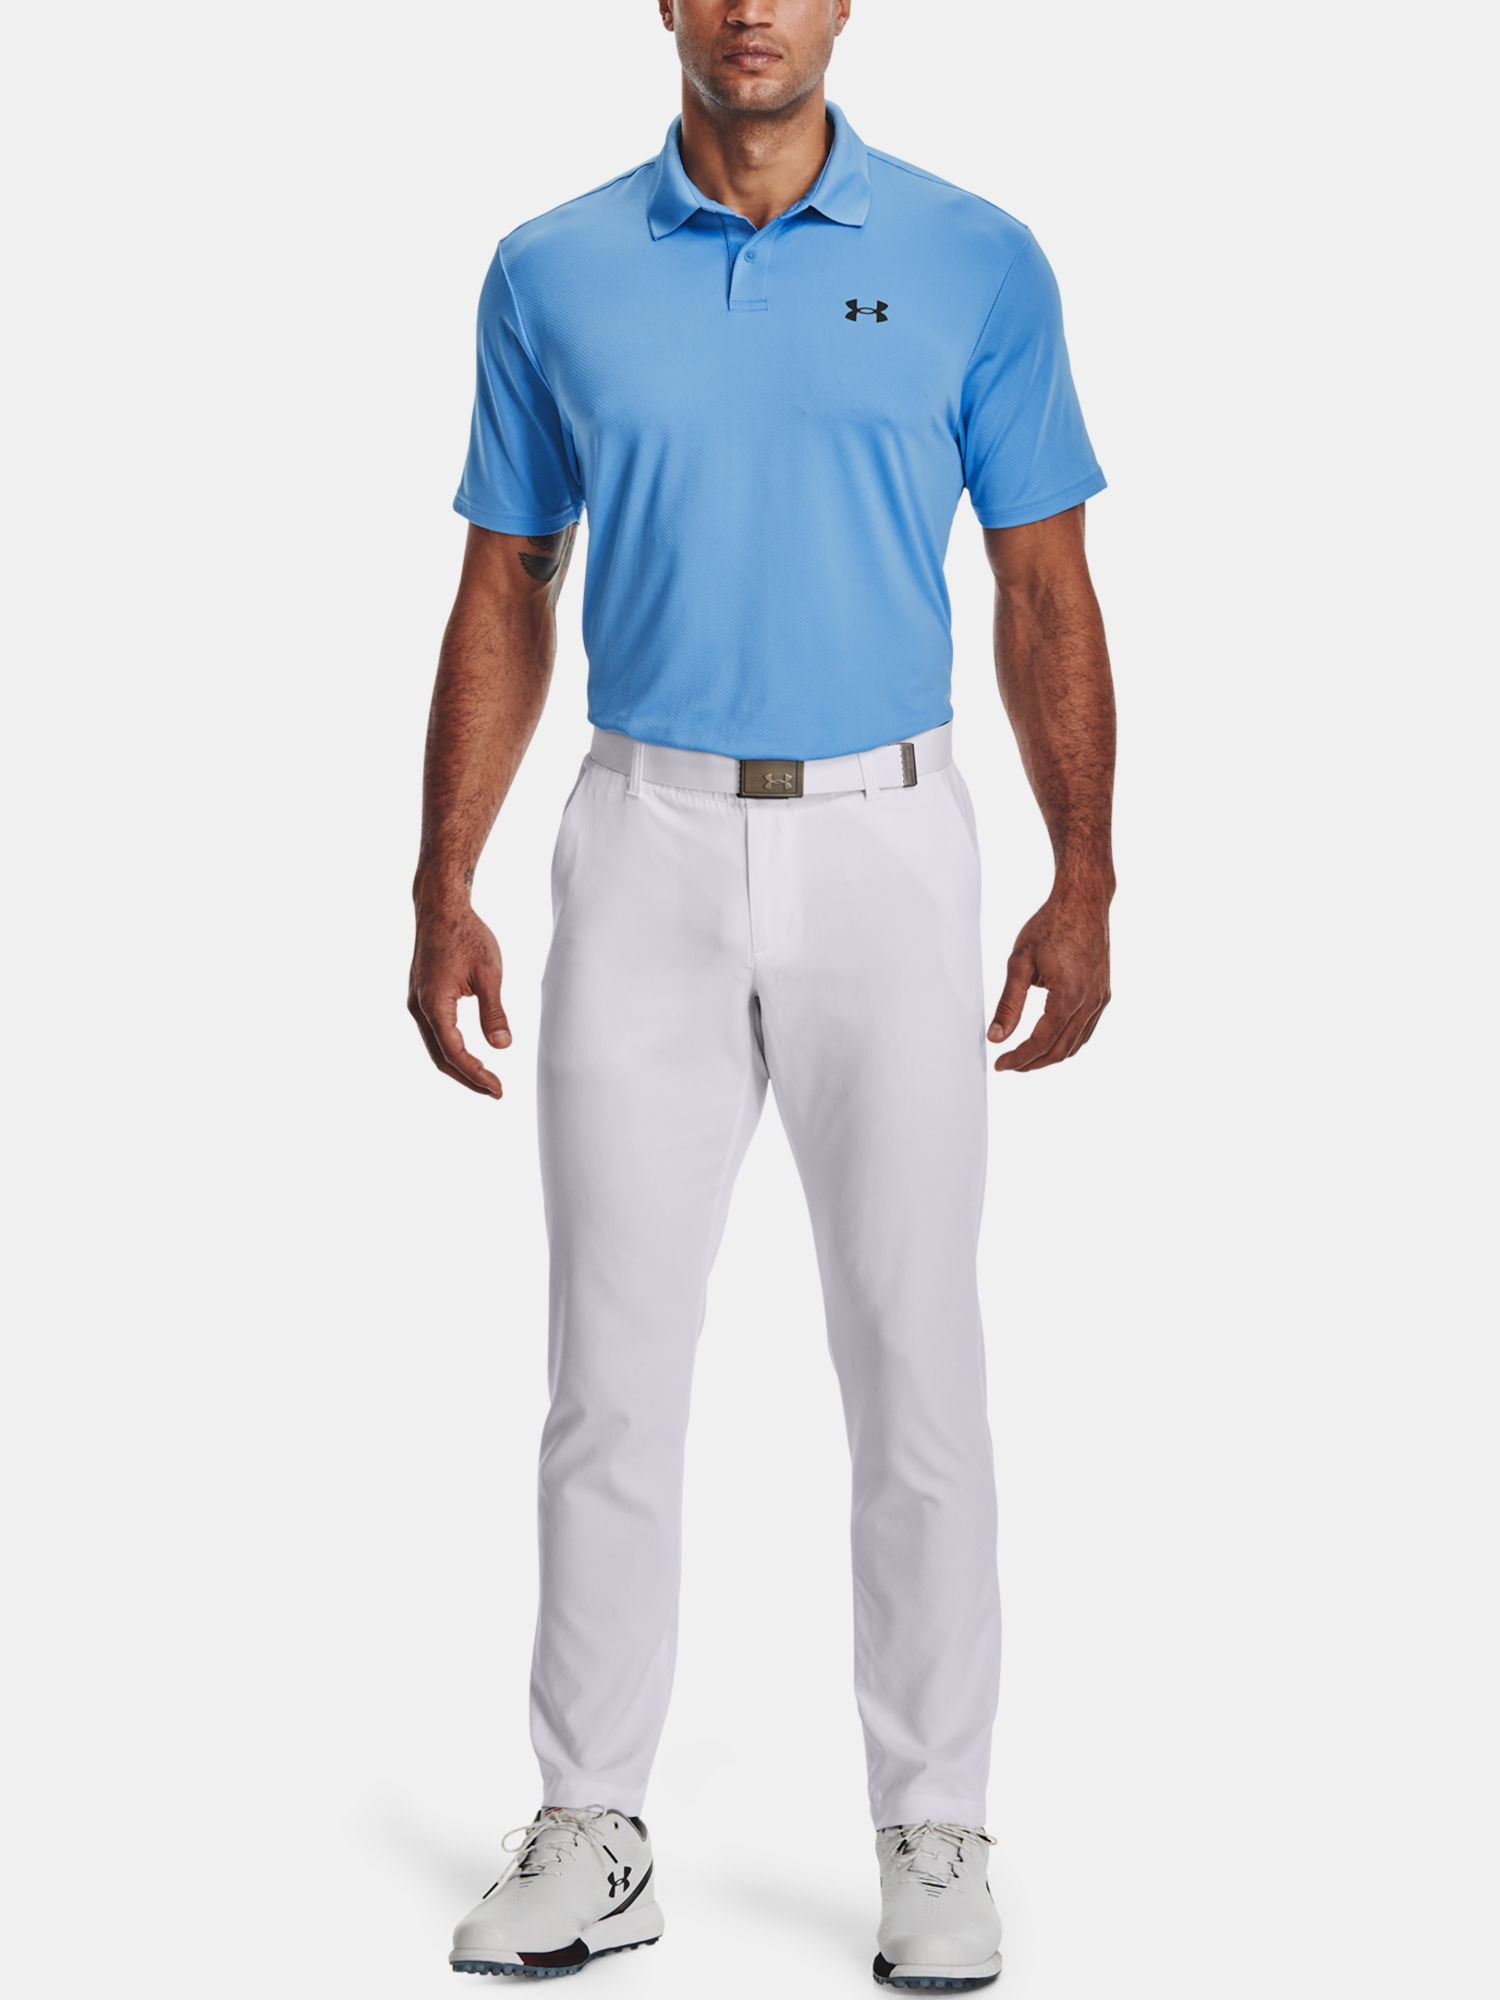 Tričko Under Armour Performance Polo 2.0-BLU (4)